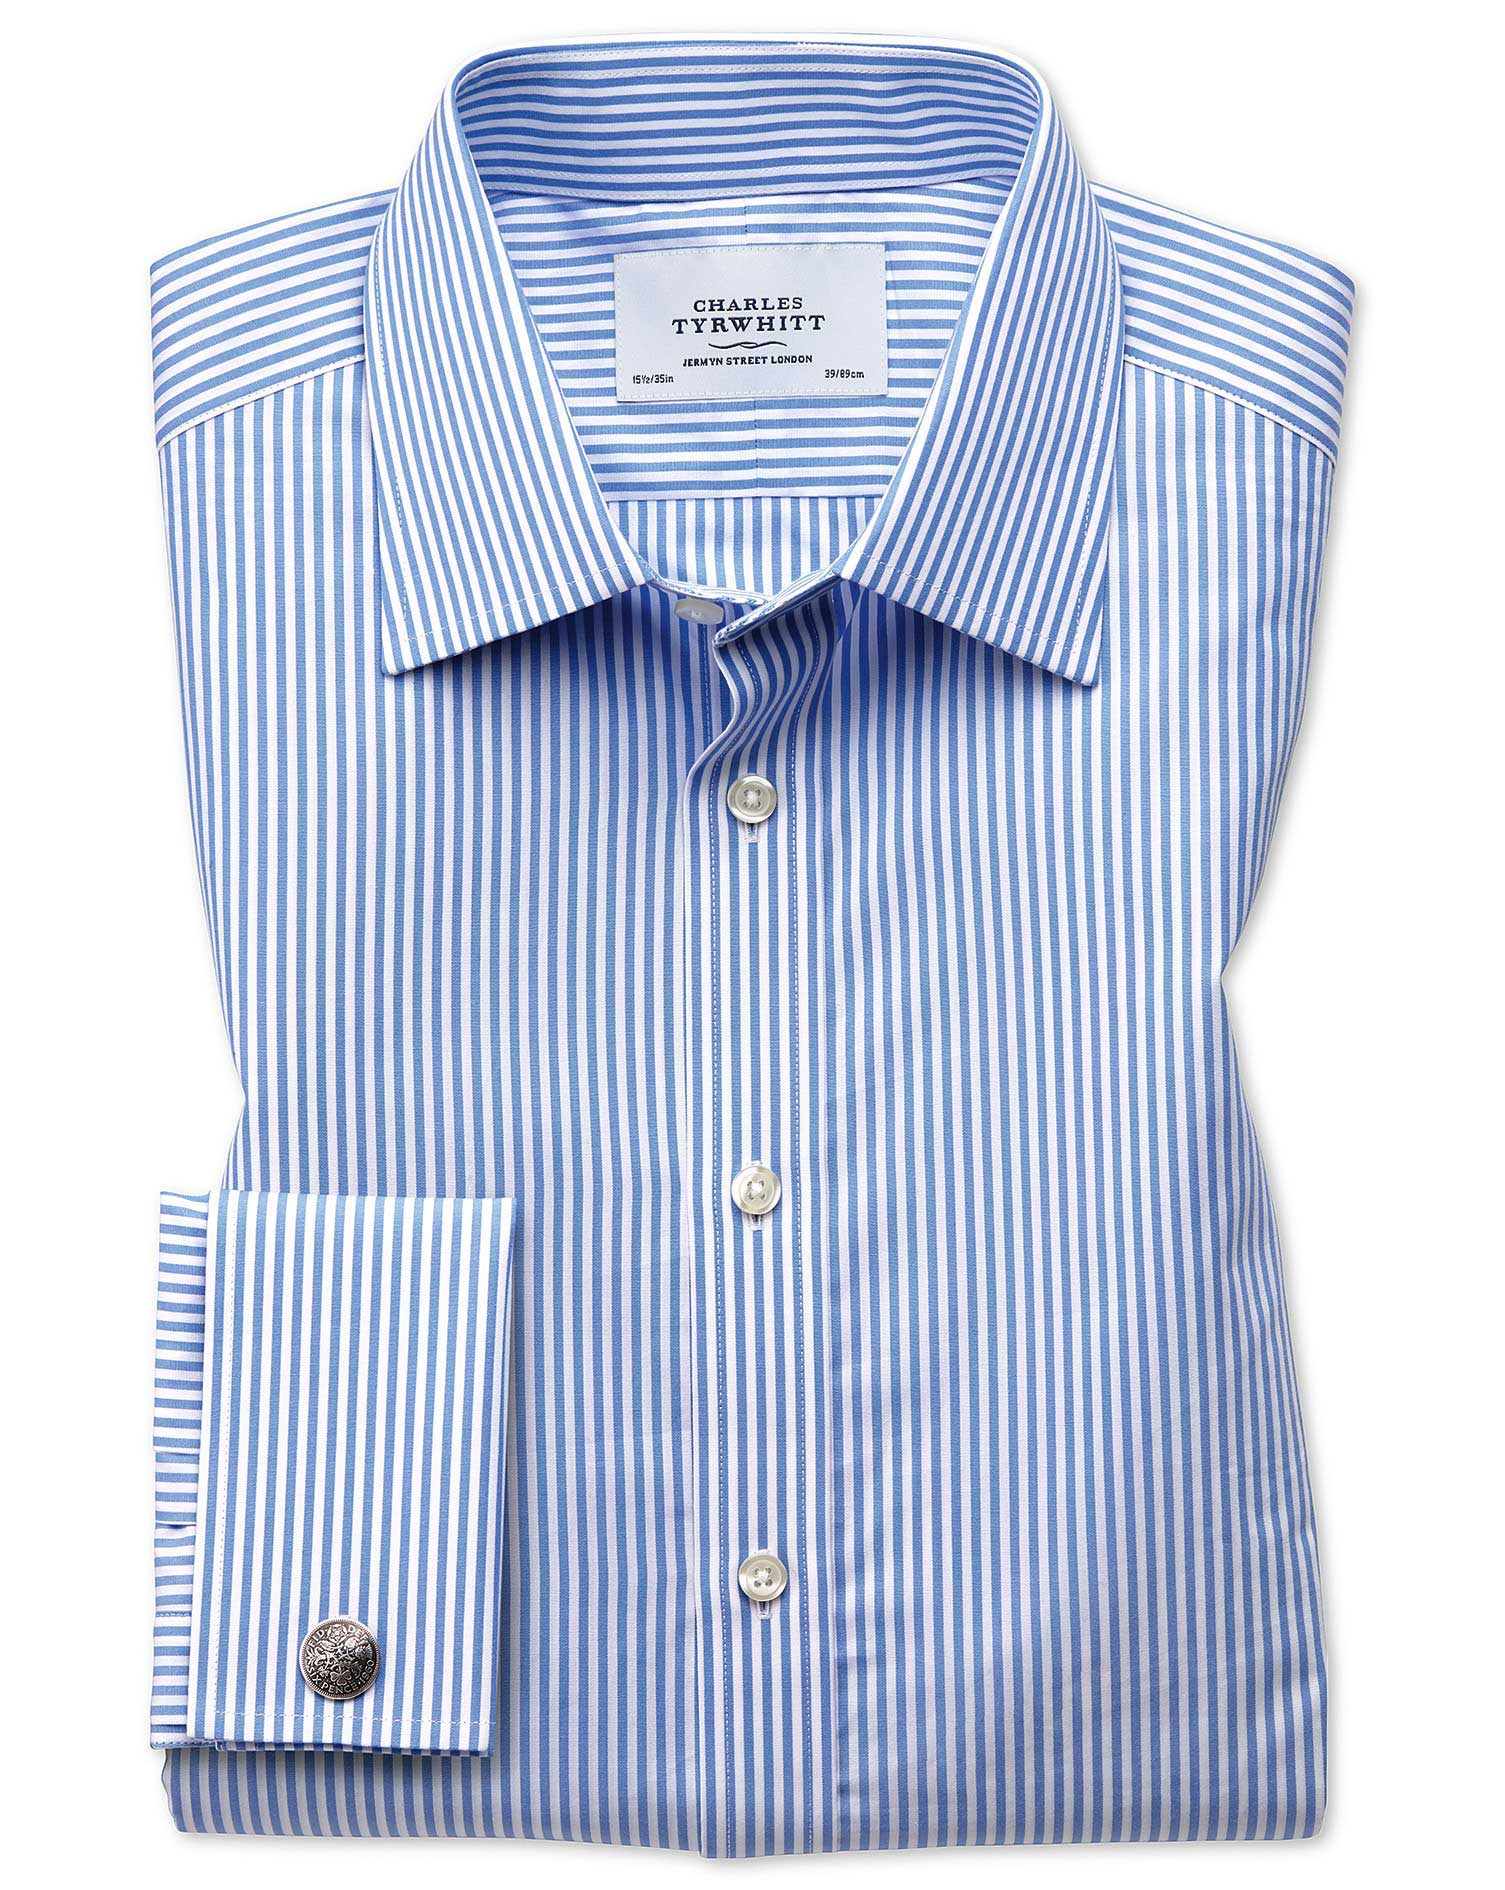 Extra Slim Fit Bengal Stripe Sky Blue Cotton Formal Shirt Double Cuff Size 17/35 by Charles Tyrwhitt